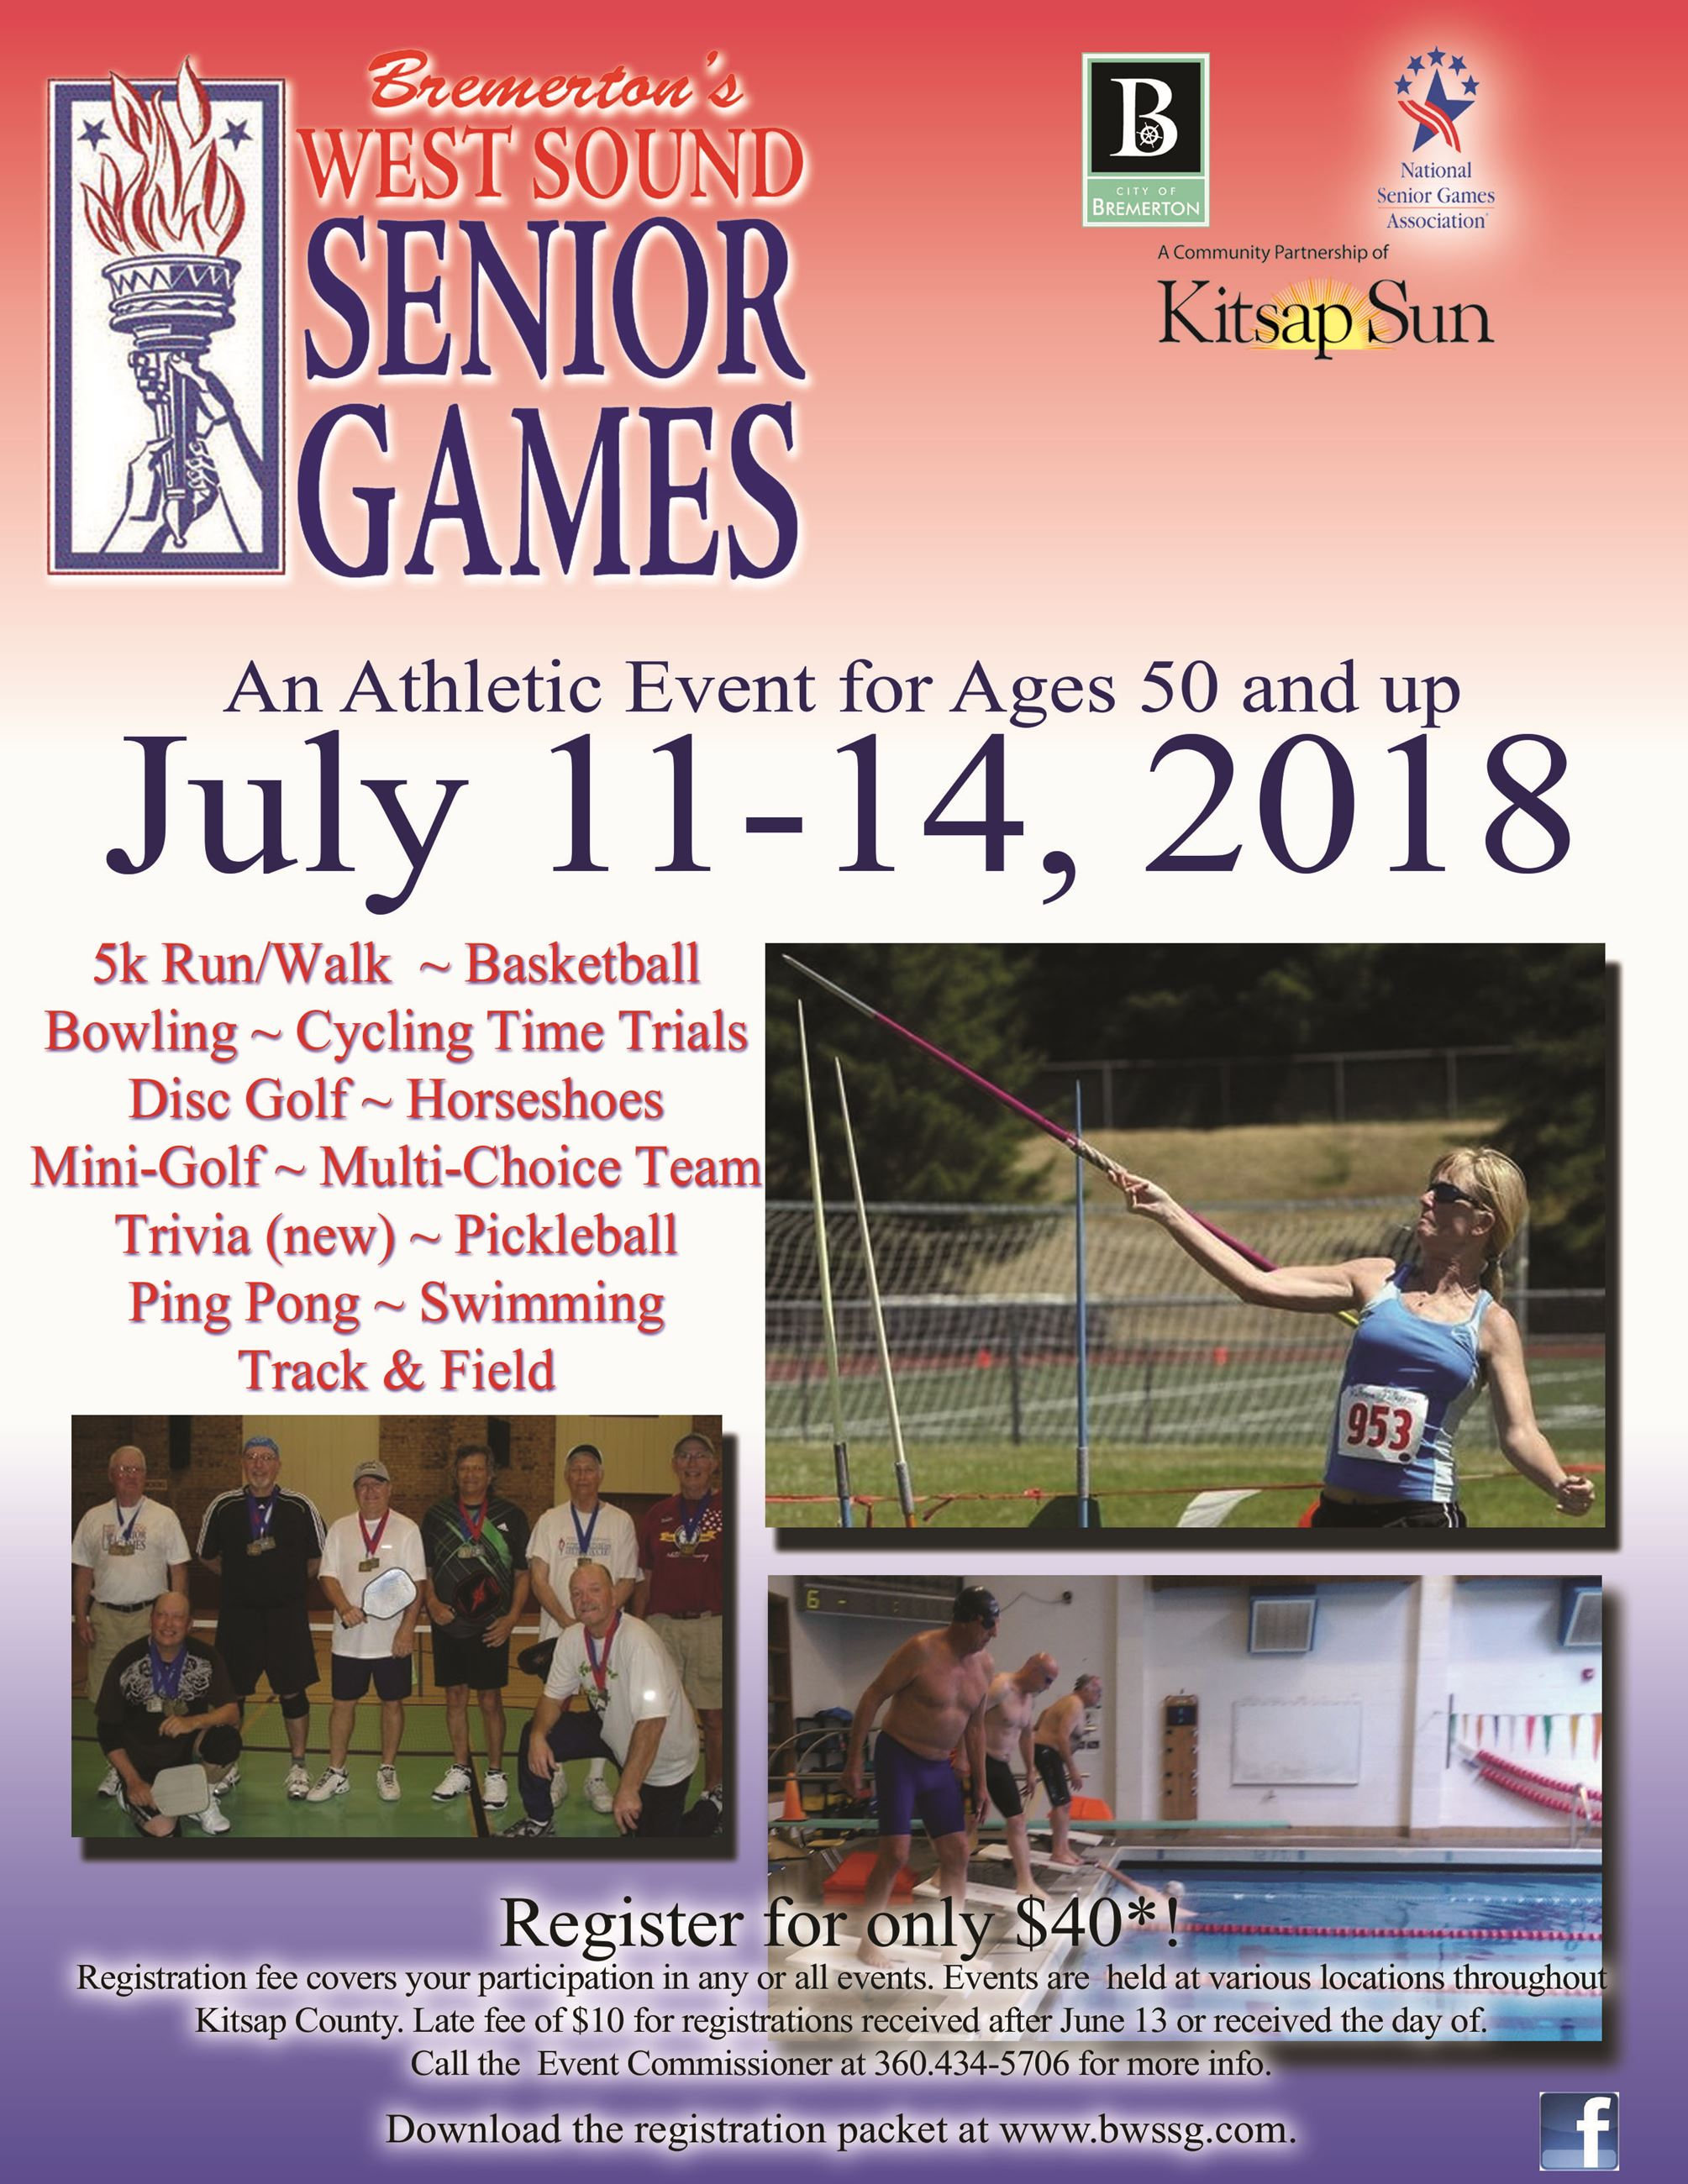 2018 Bremerton West Sound Senior Games